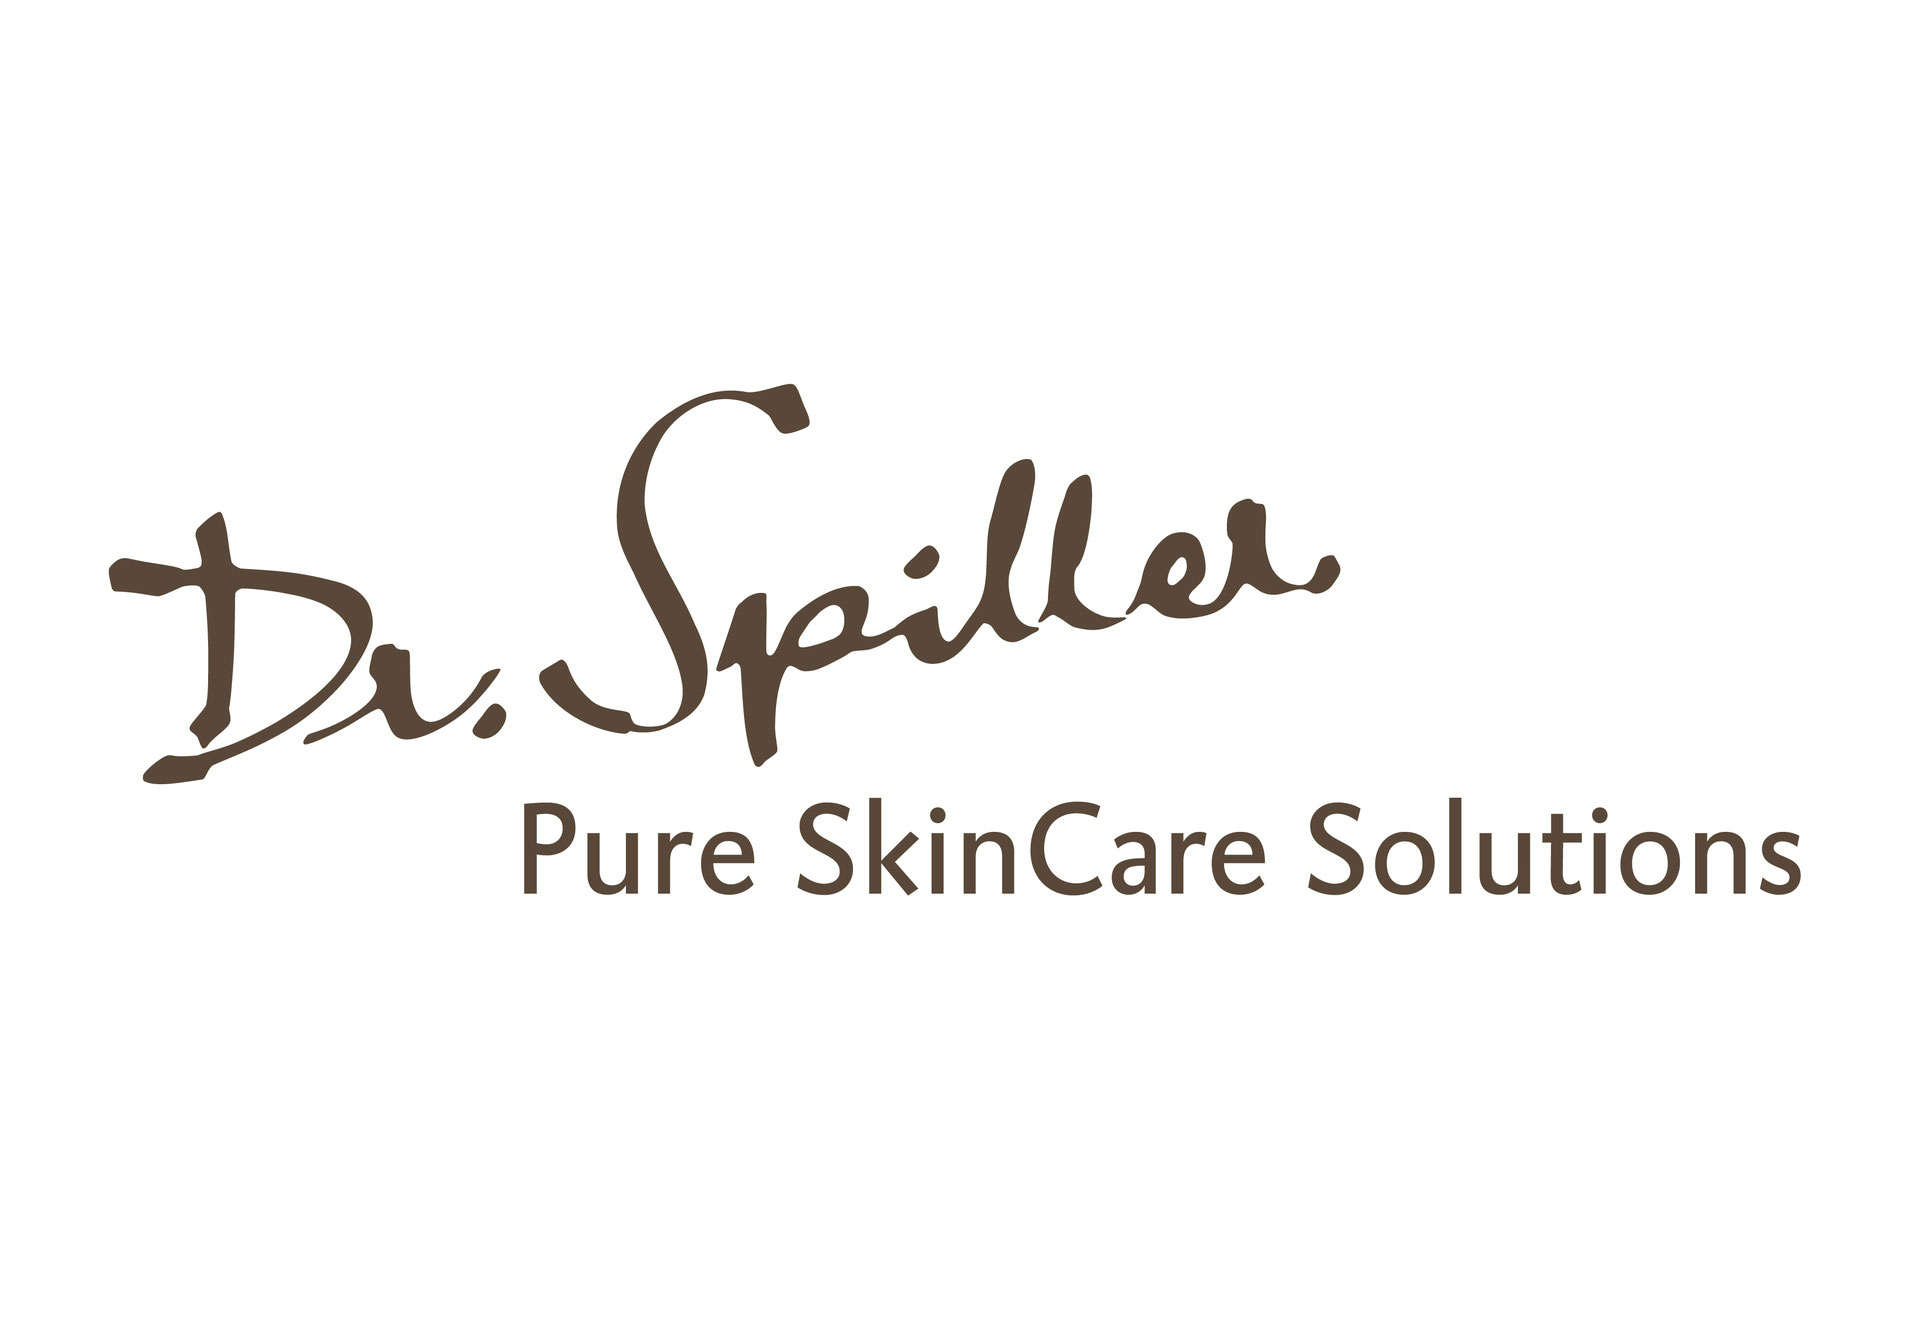 Dr. Spiller Pure SkinCare Solutions